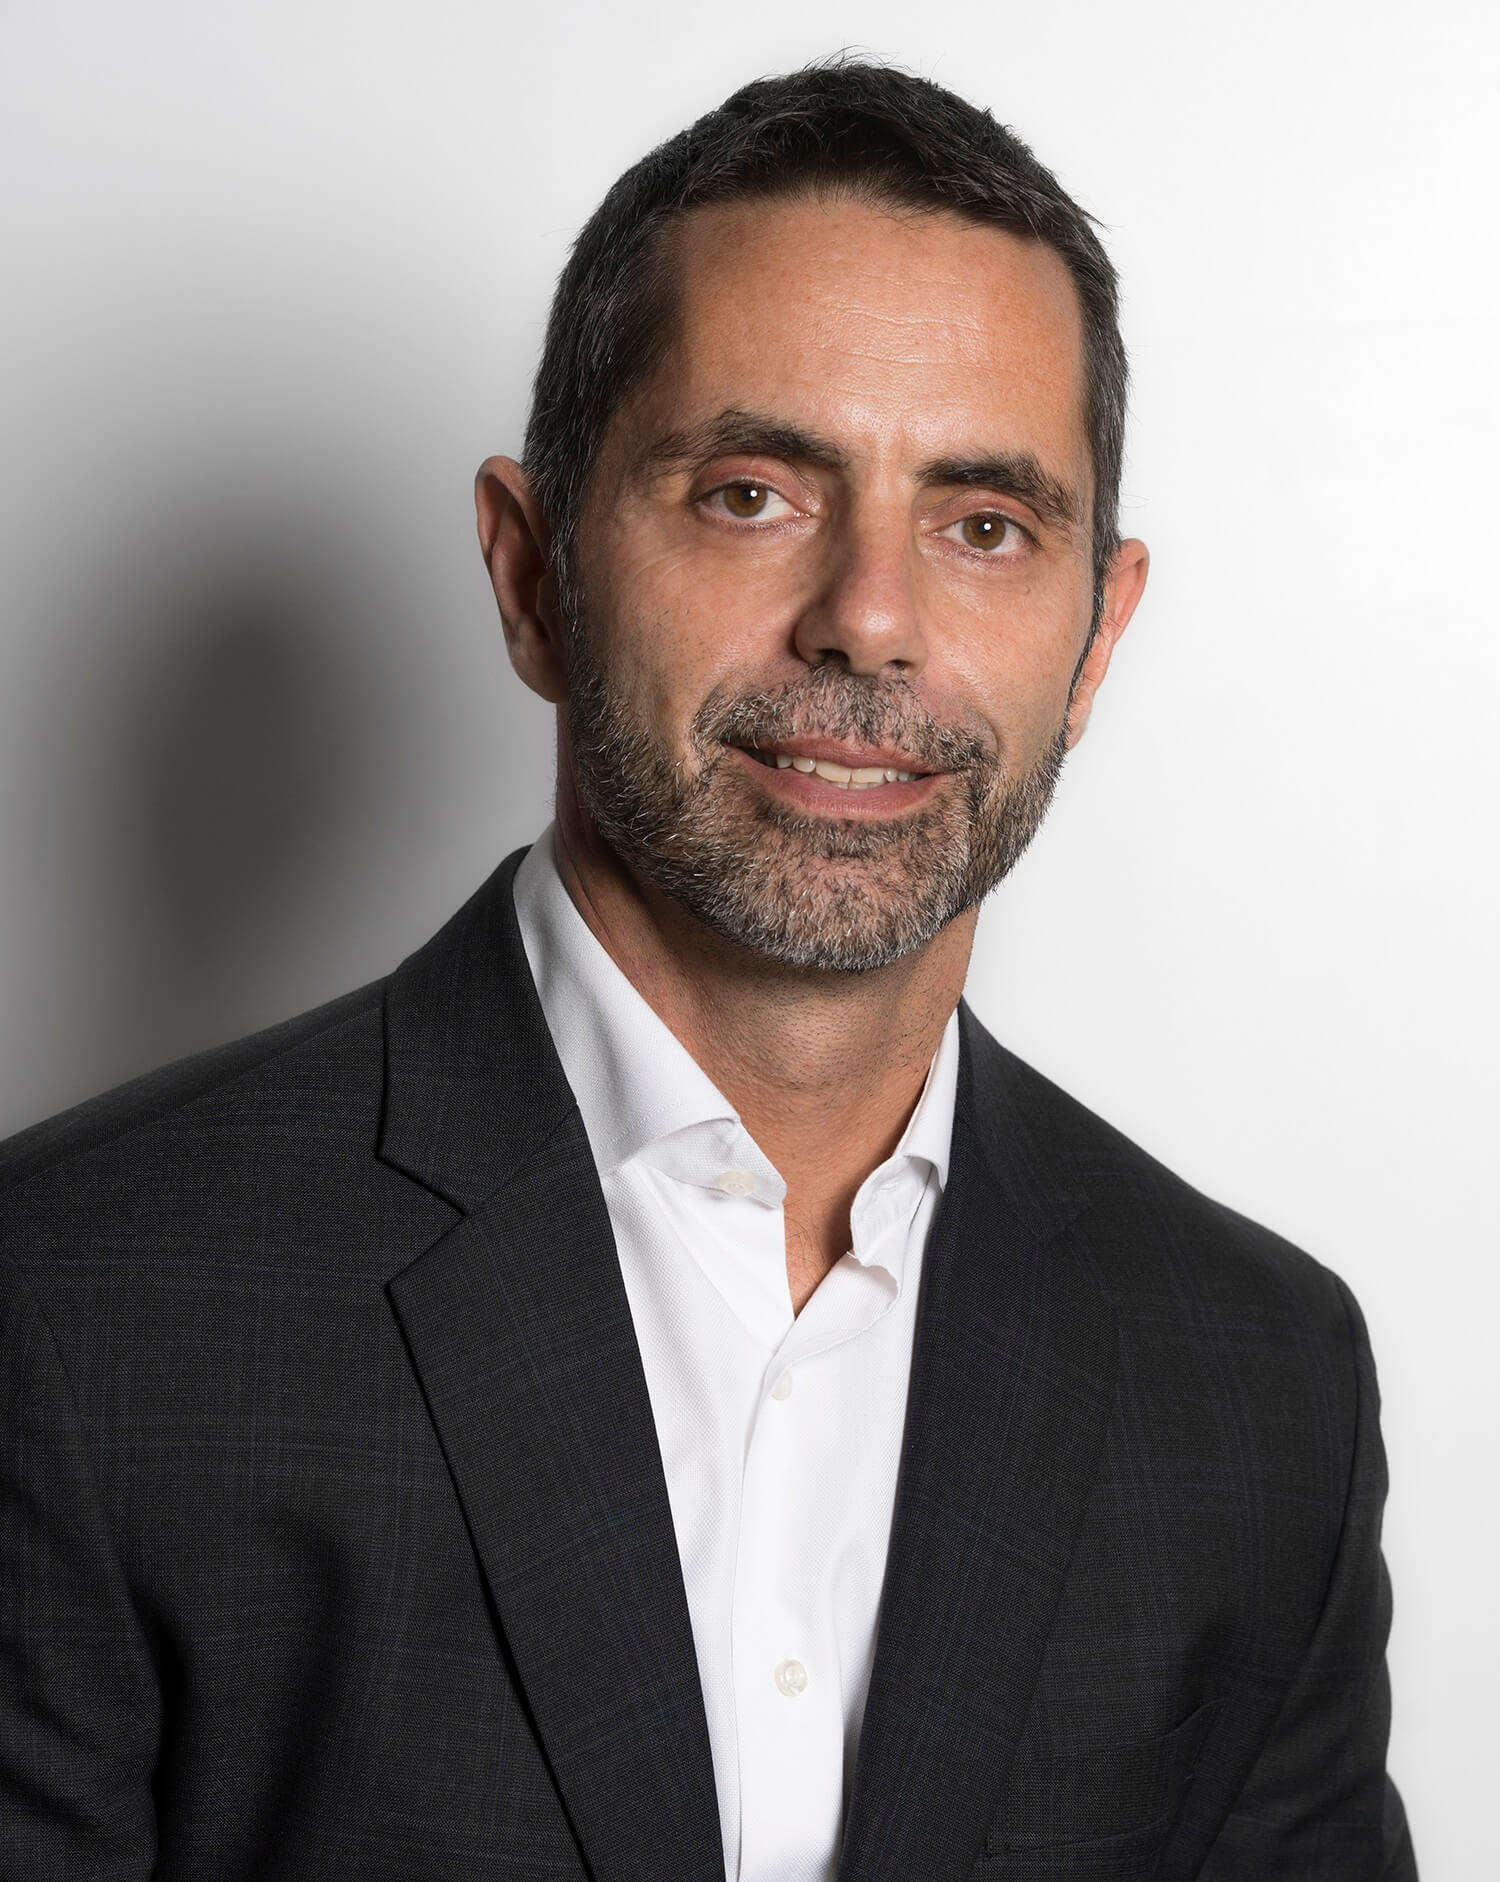 Hotelbeds announces new Global Sales Director